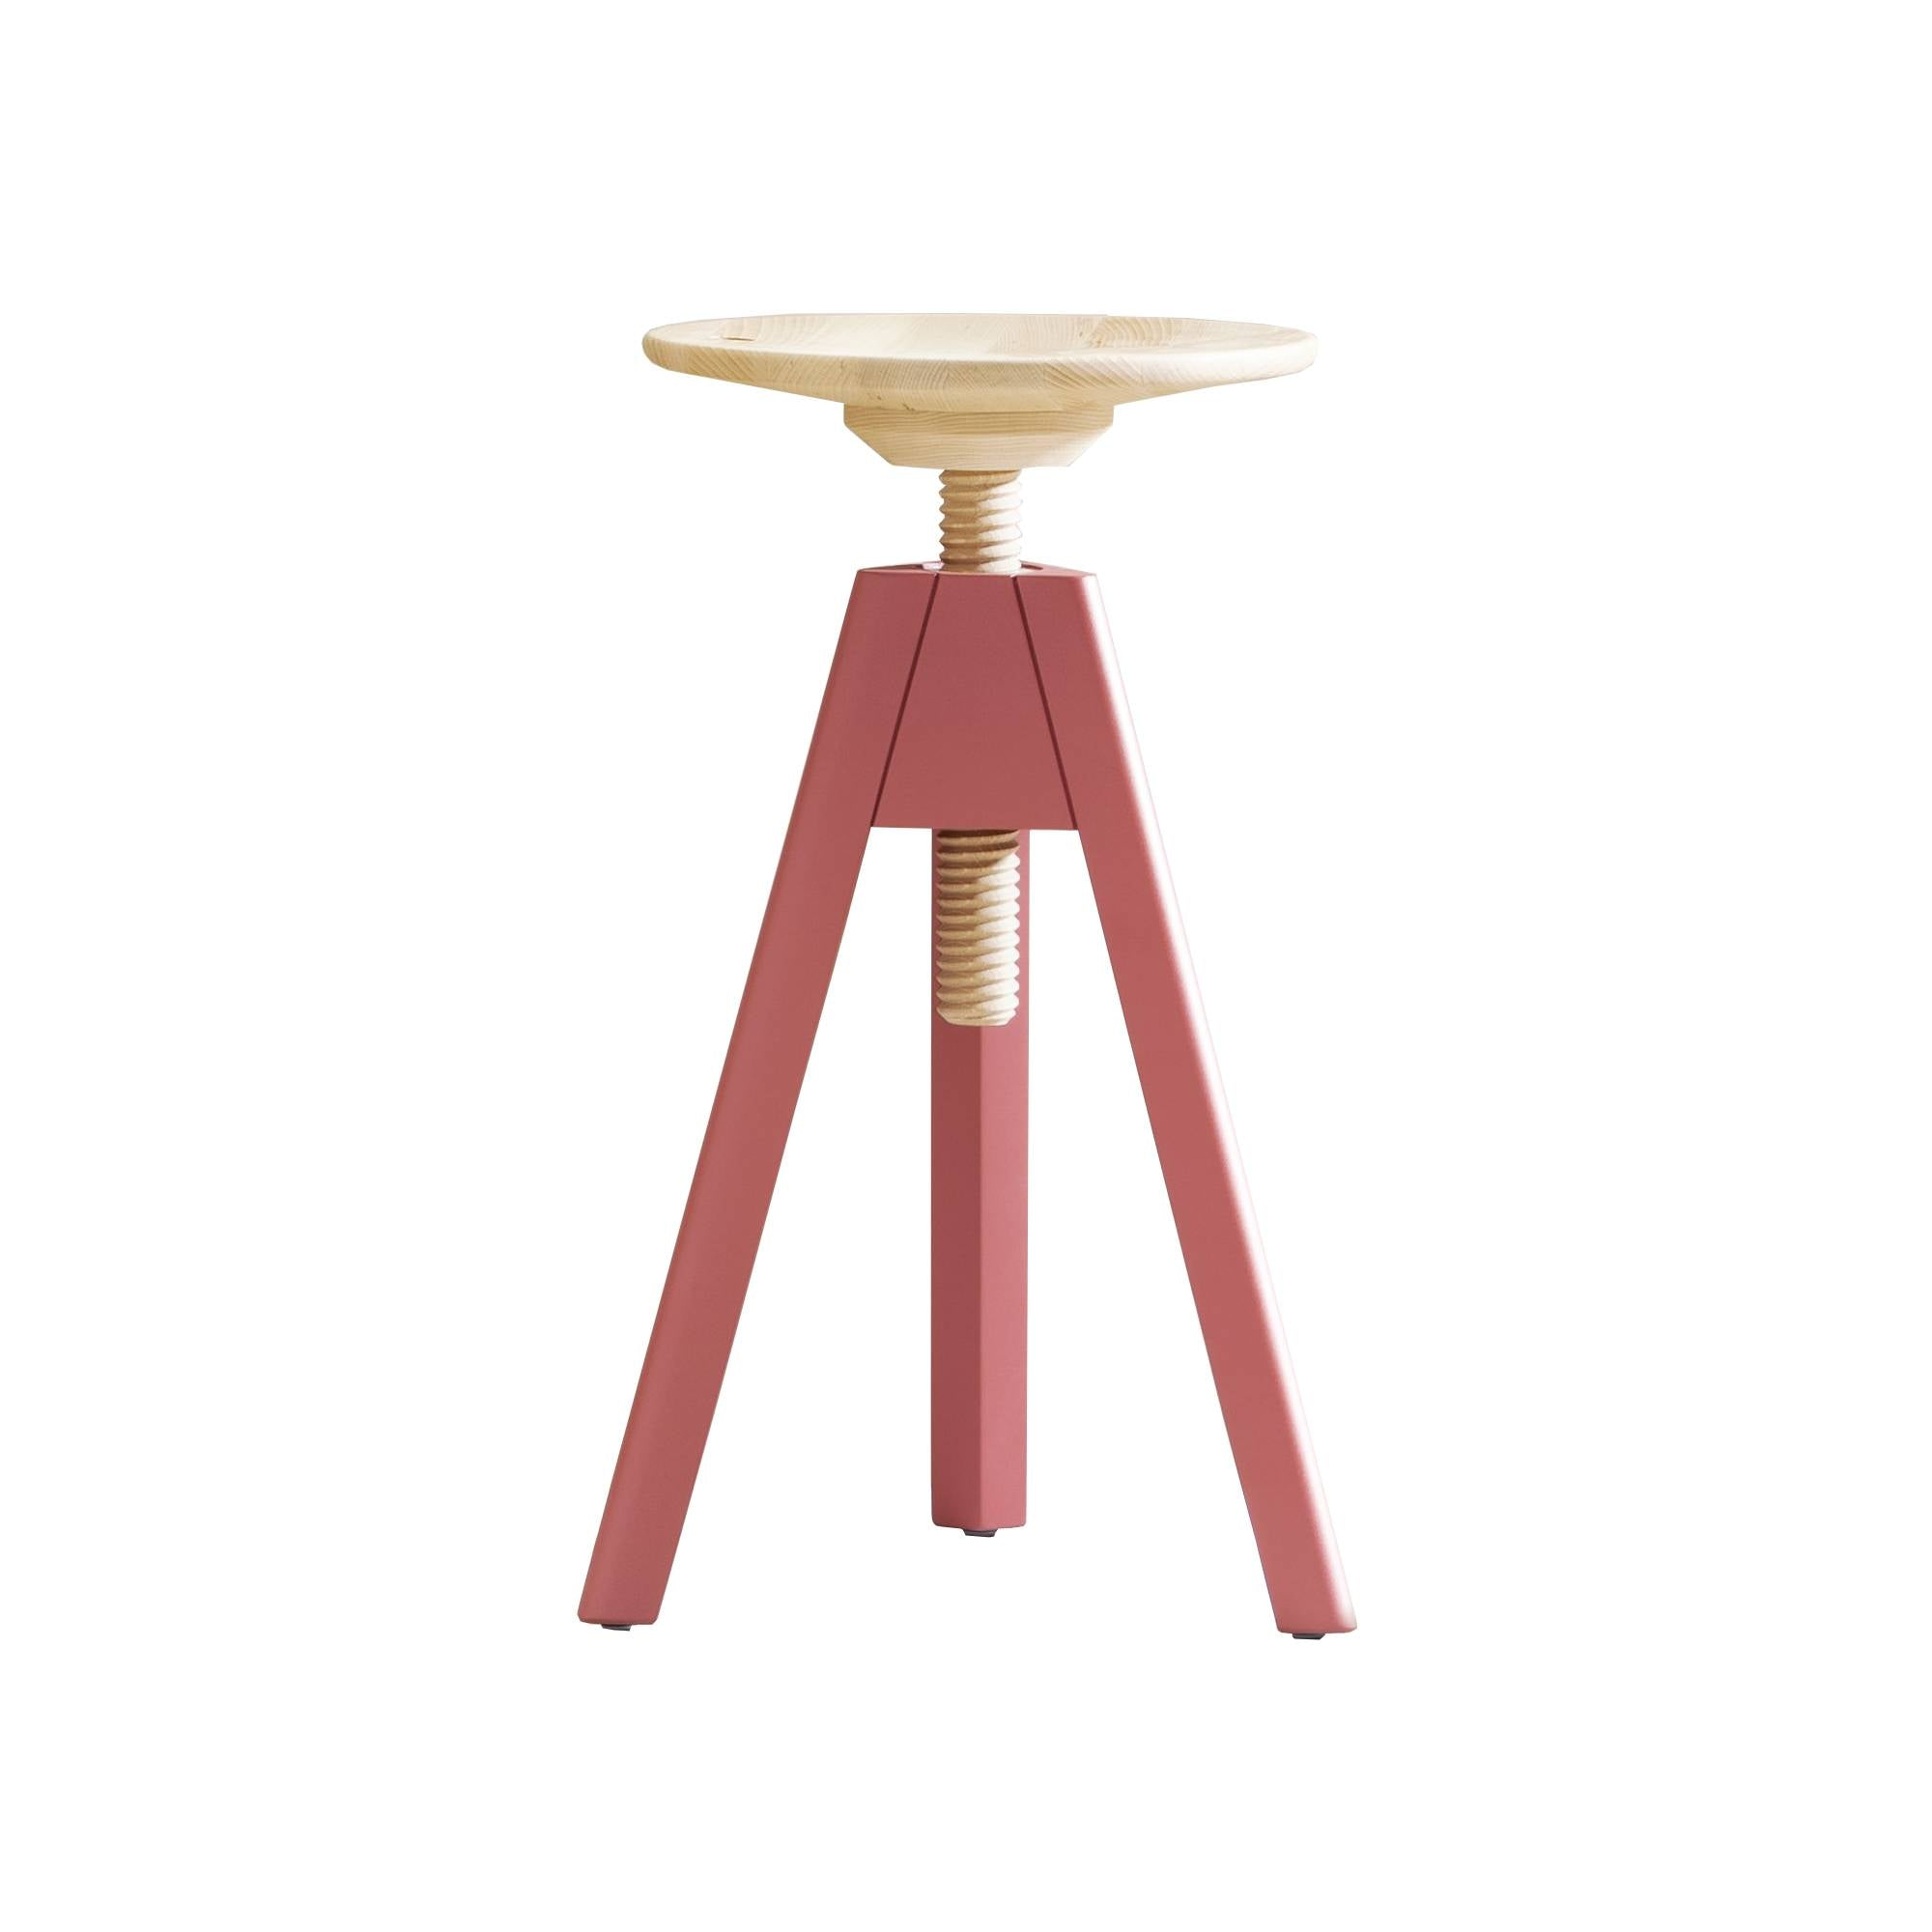 Vitos Stool: Medium + Marsala Red